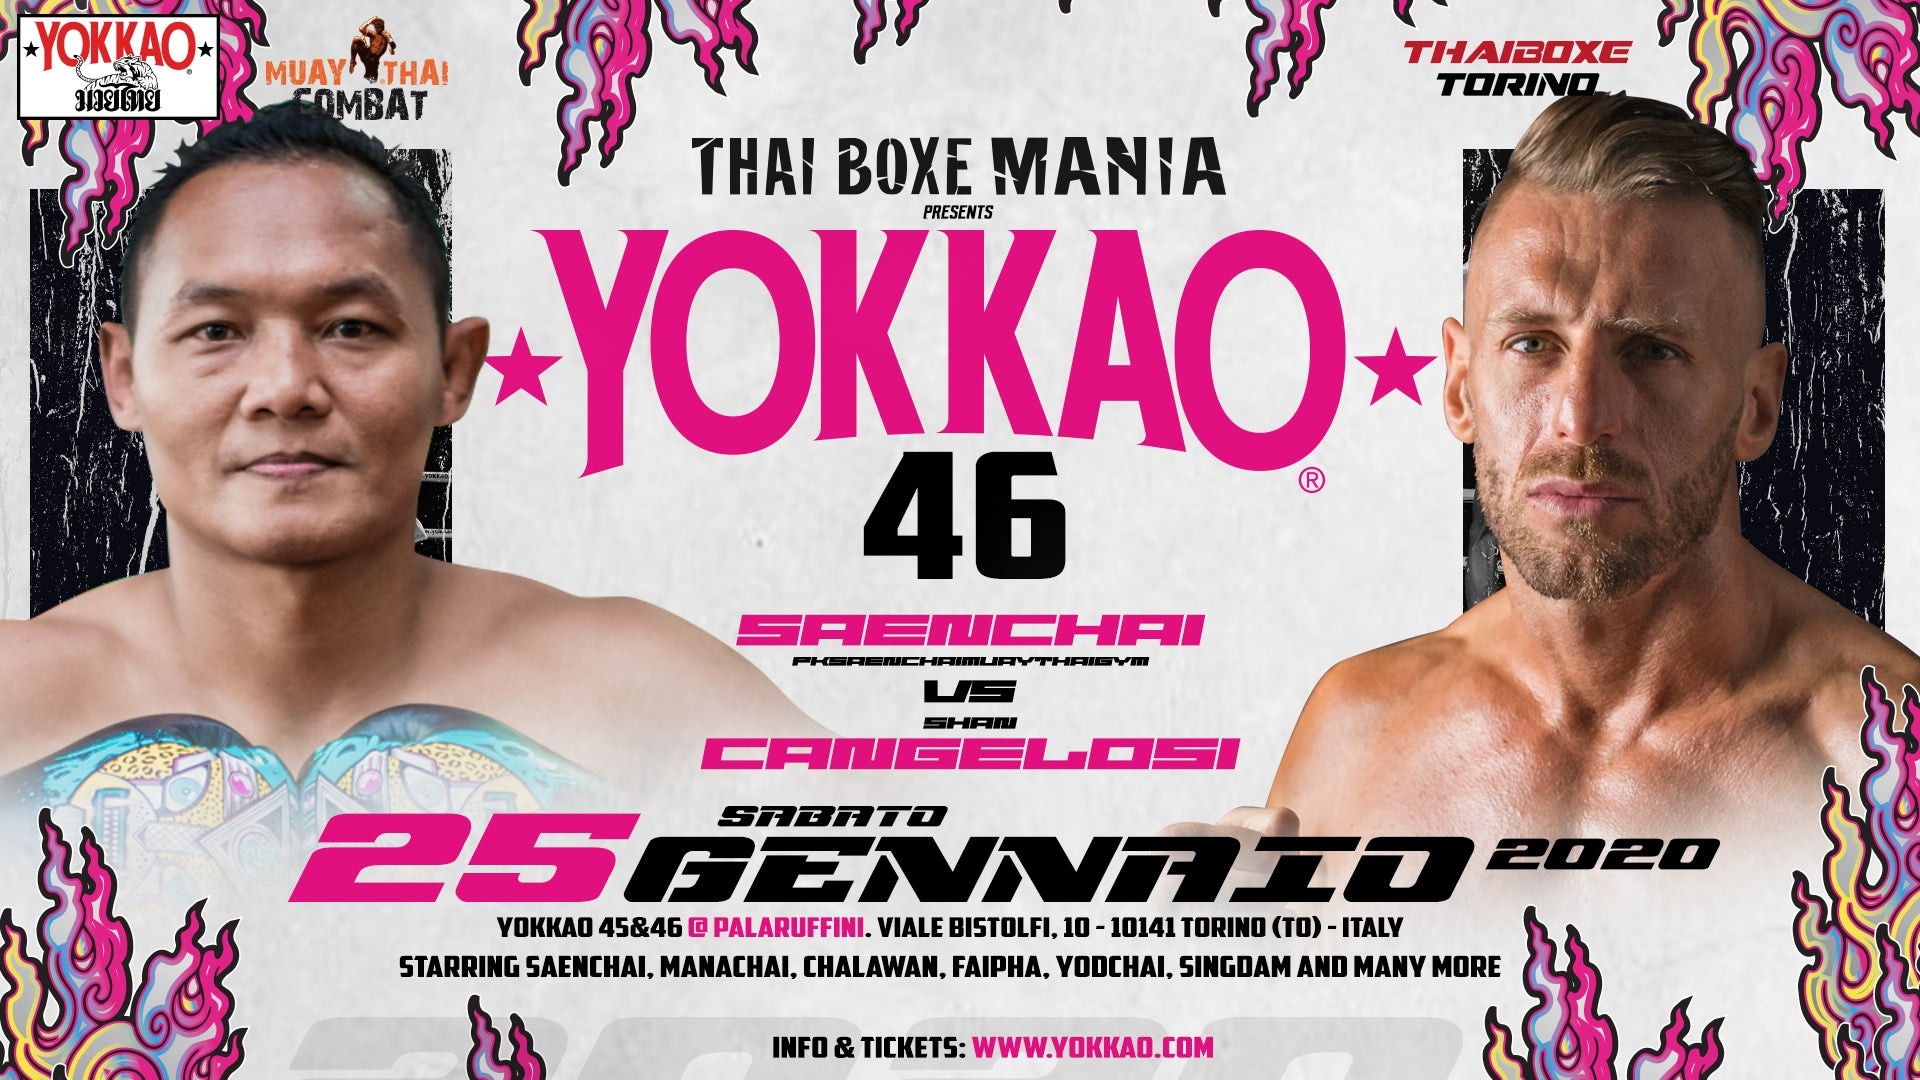 First Fight Announced: Saenchai vs Cangelosi 2 in Turin!